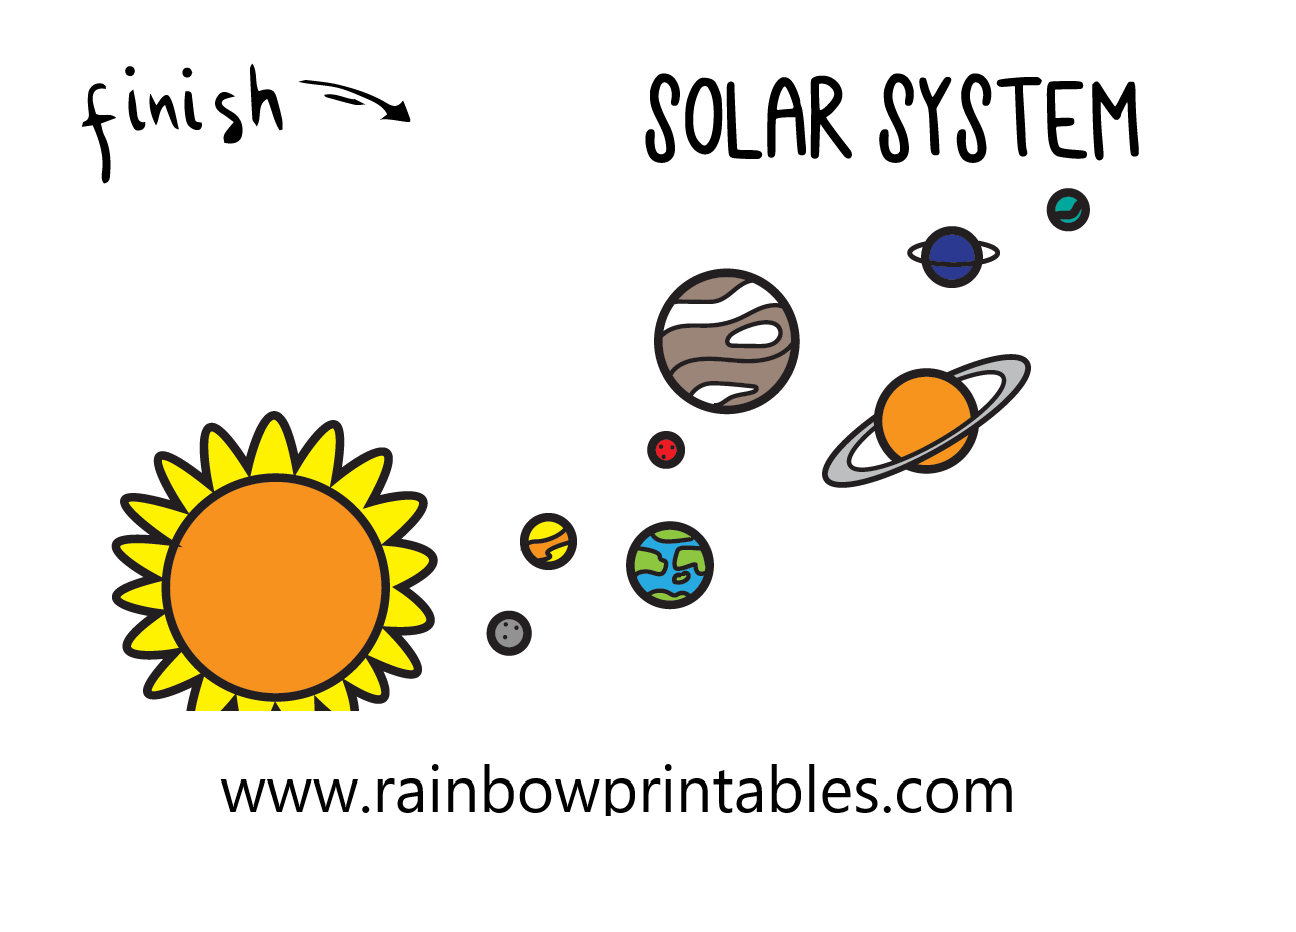 How To Draw Our Solar System – Easy Simple Step By Step Guide for Kids